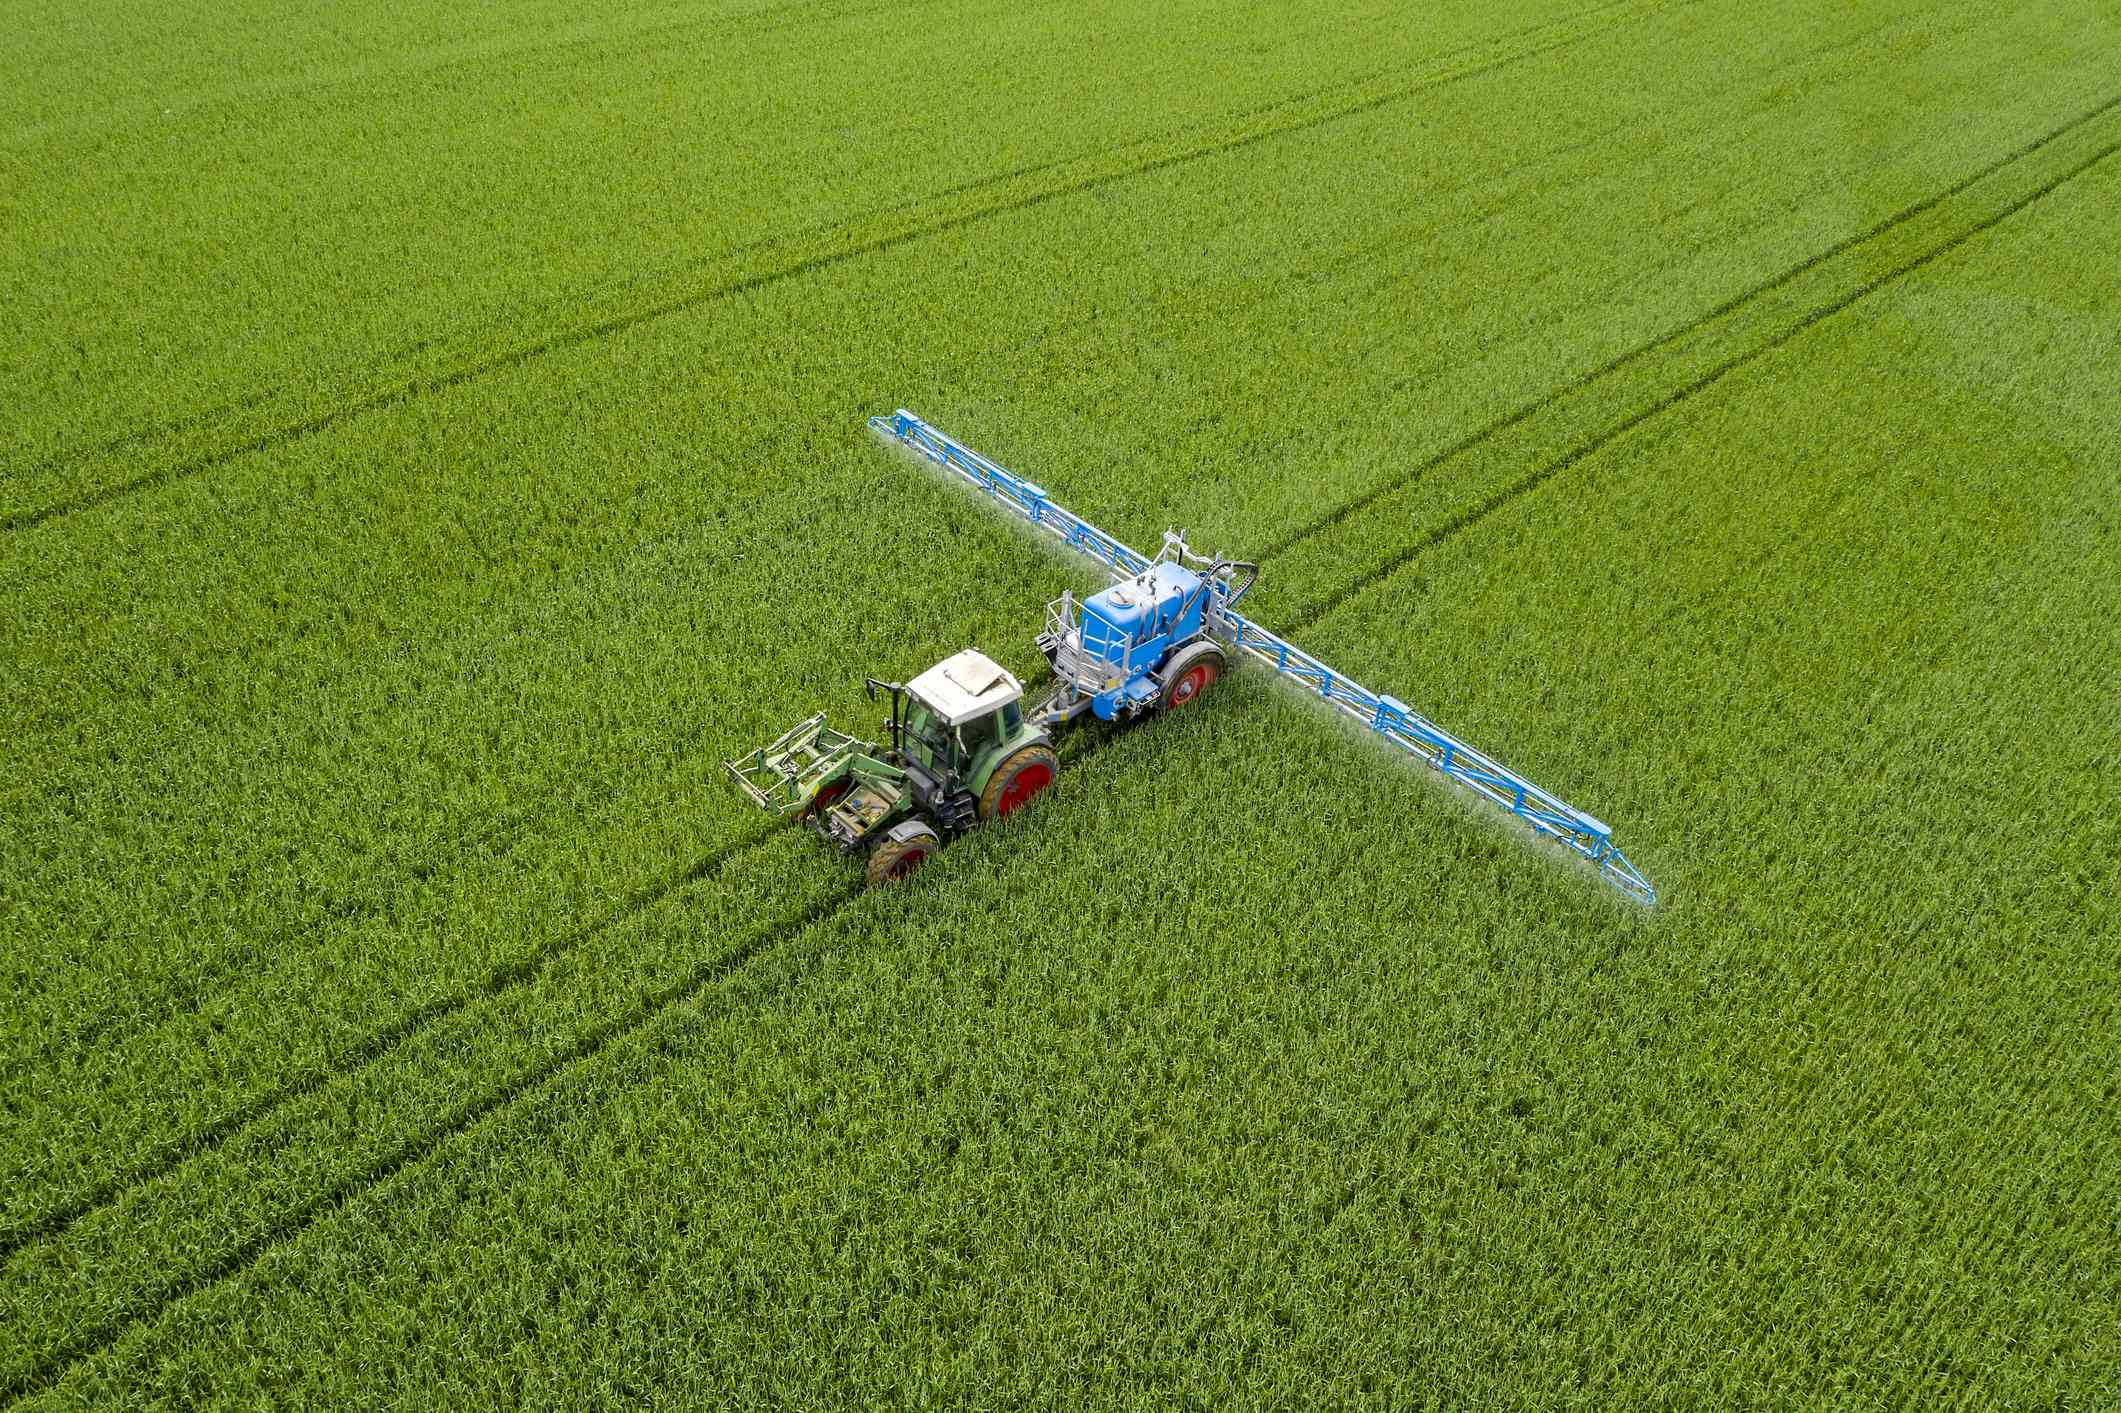 Aerial view of rtactor spraying wheat field